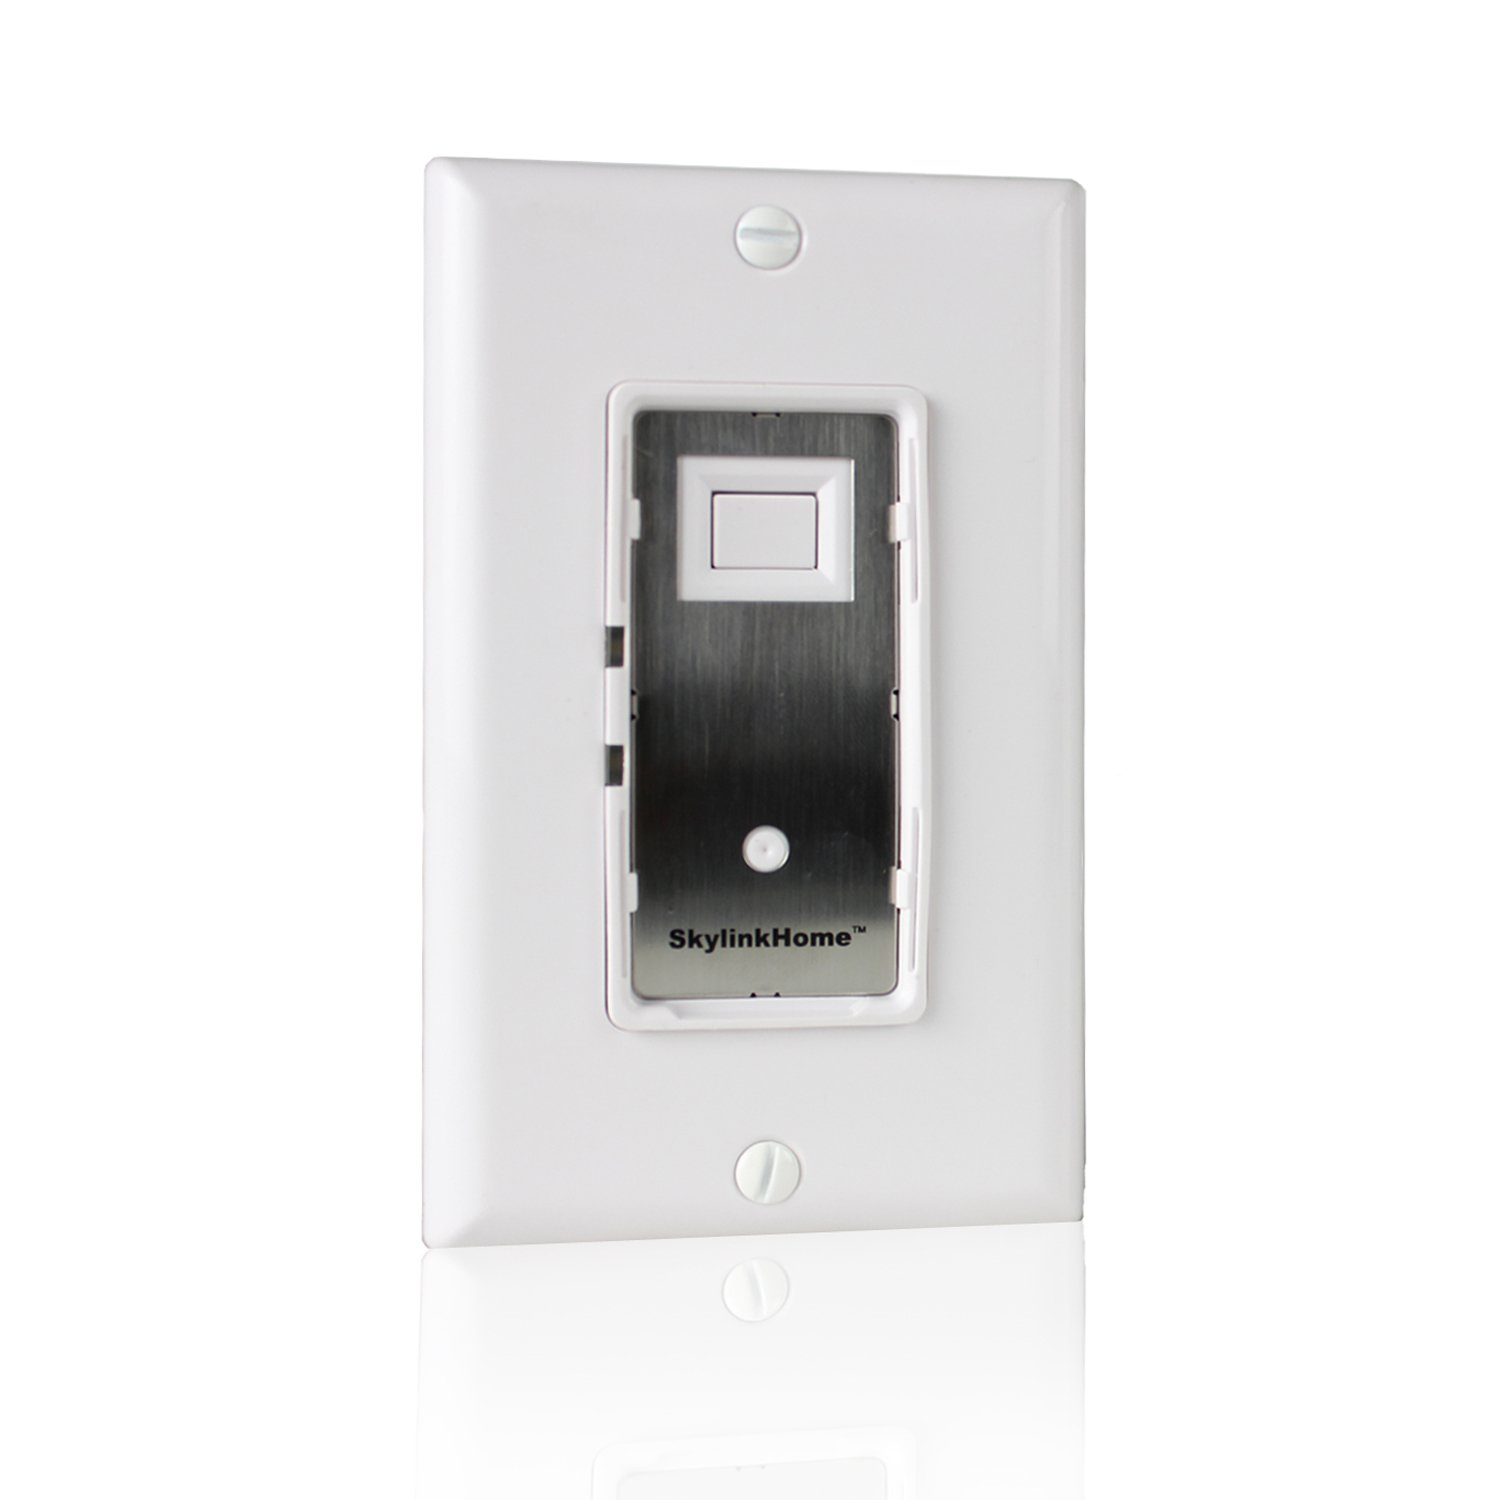 SkylinkHome WE InWall Lighting Receiver On Off Relay Or - Bathroom dimmer light switch